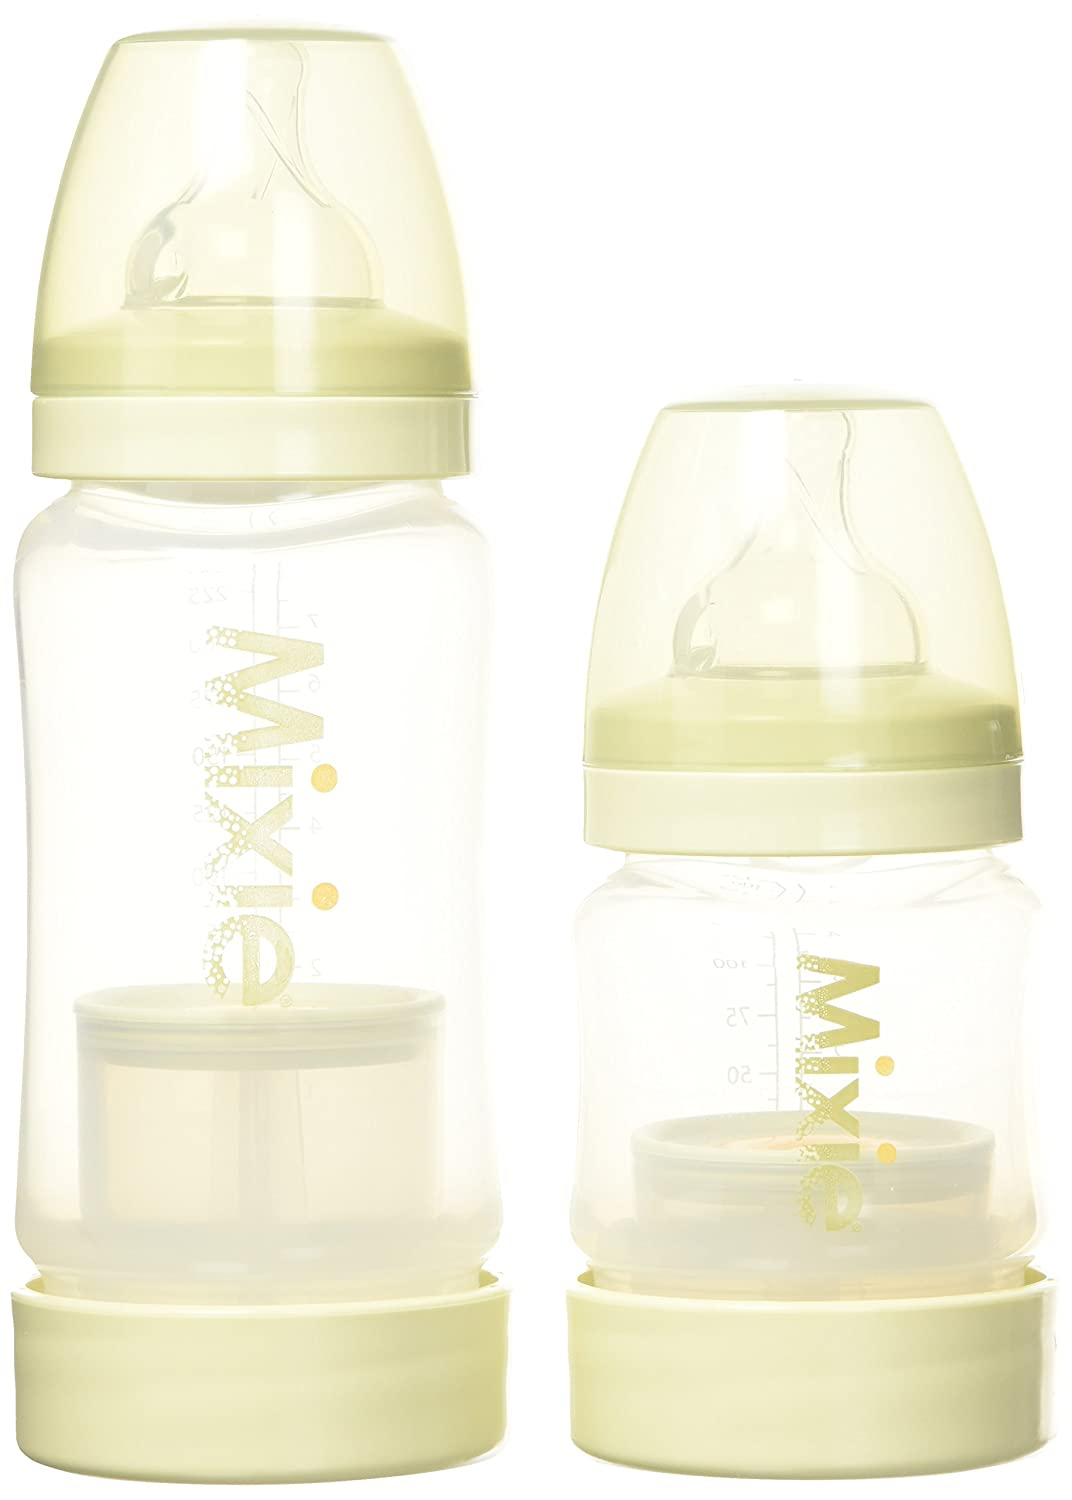 Mixie Baby Formula Mixing Bottle, Clear/Green, 4-8 Mixe Baby